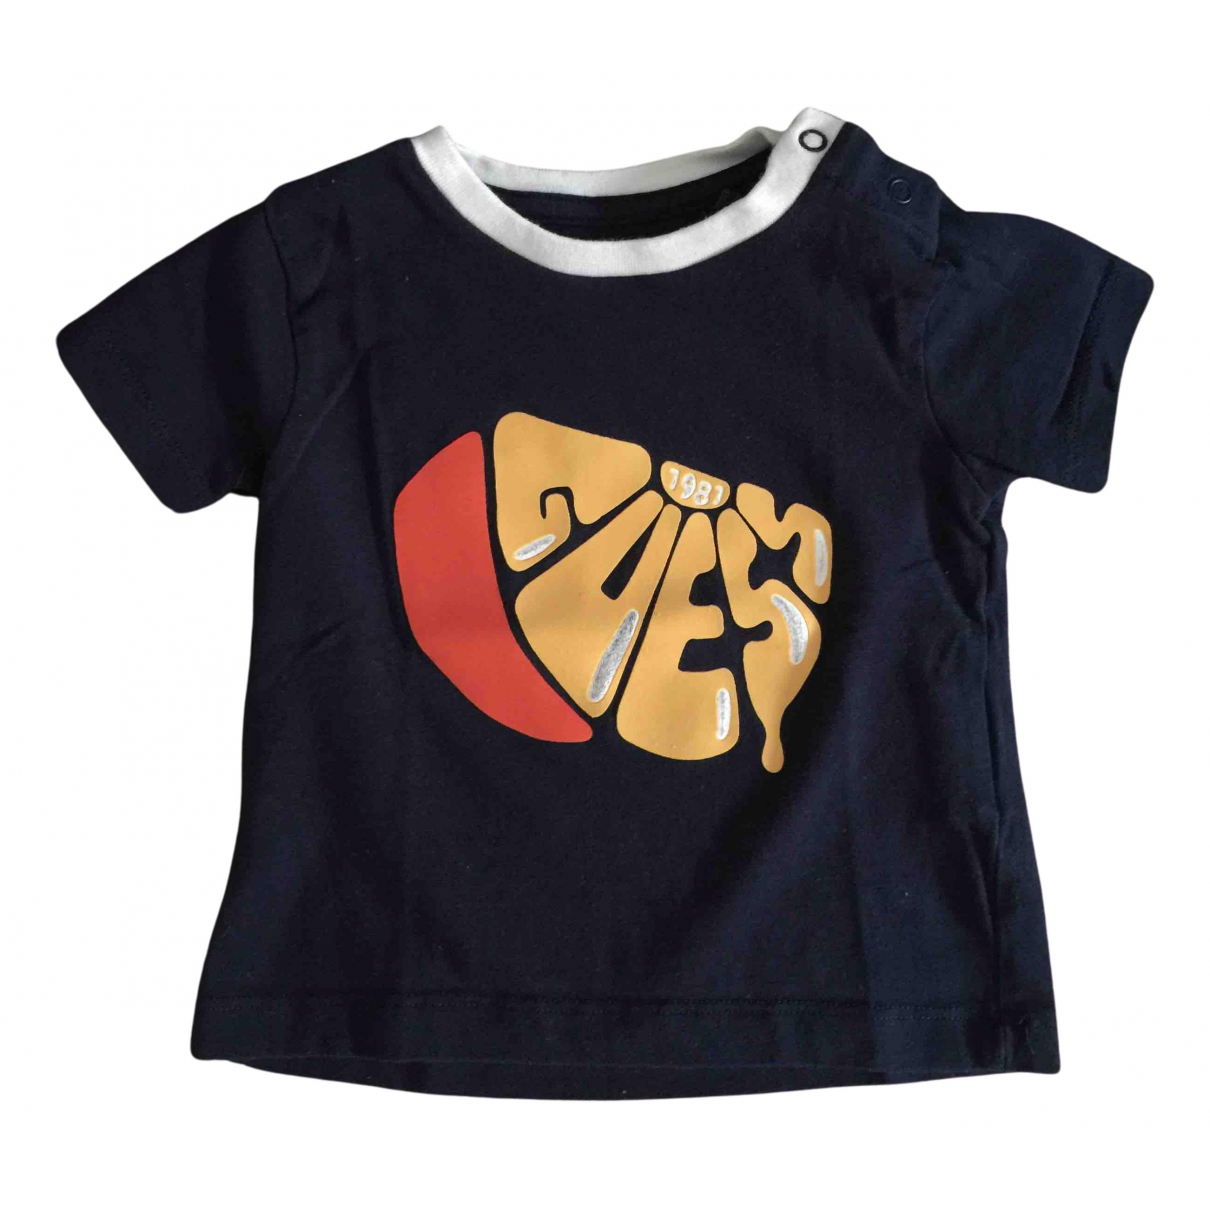 Guess N Blue Cotton  top for Kids 9 months - up to 71cm FR